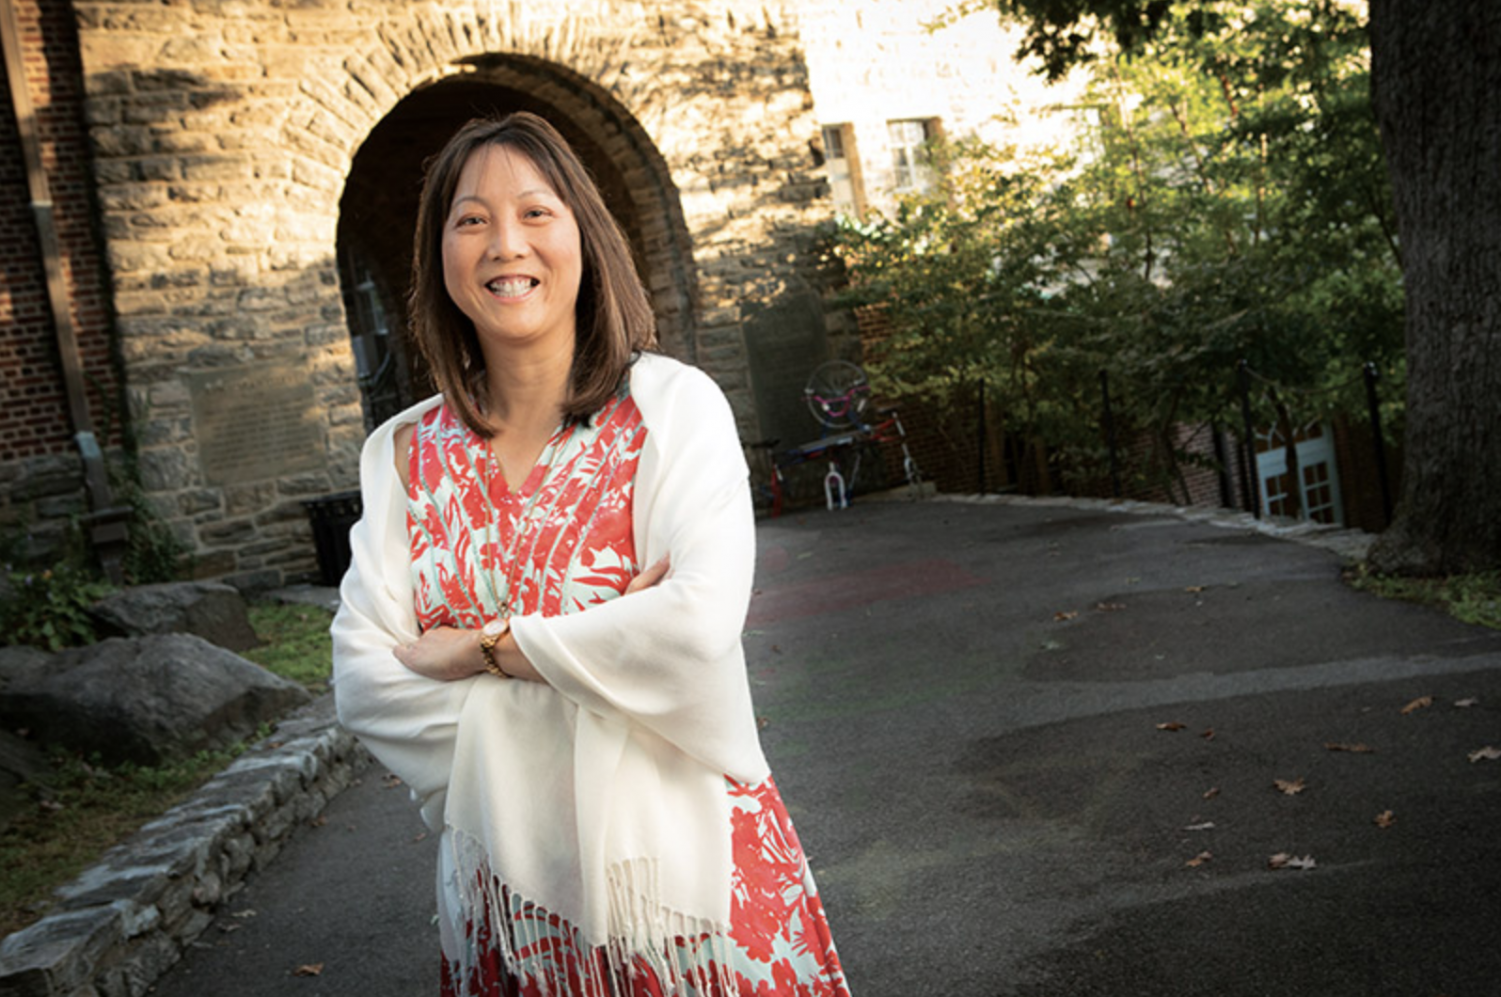 After moving from one COVID-19 hotspot to another to begin her new job in July, new Head of Middle School Chia-Chee Chiu is reimagining what a school leader looks like amidst the challenges of remote learning.